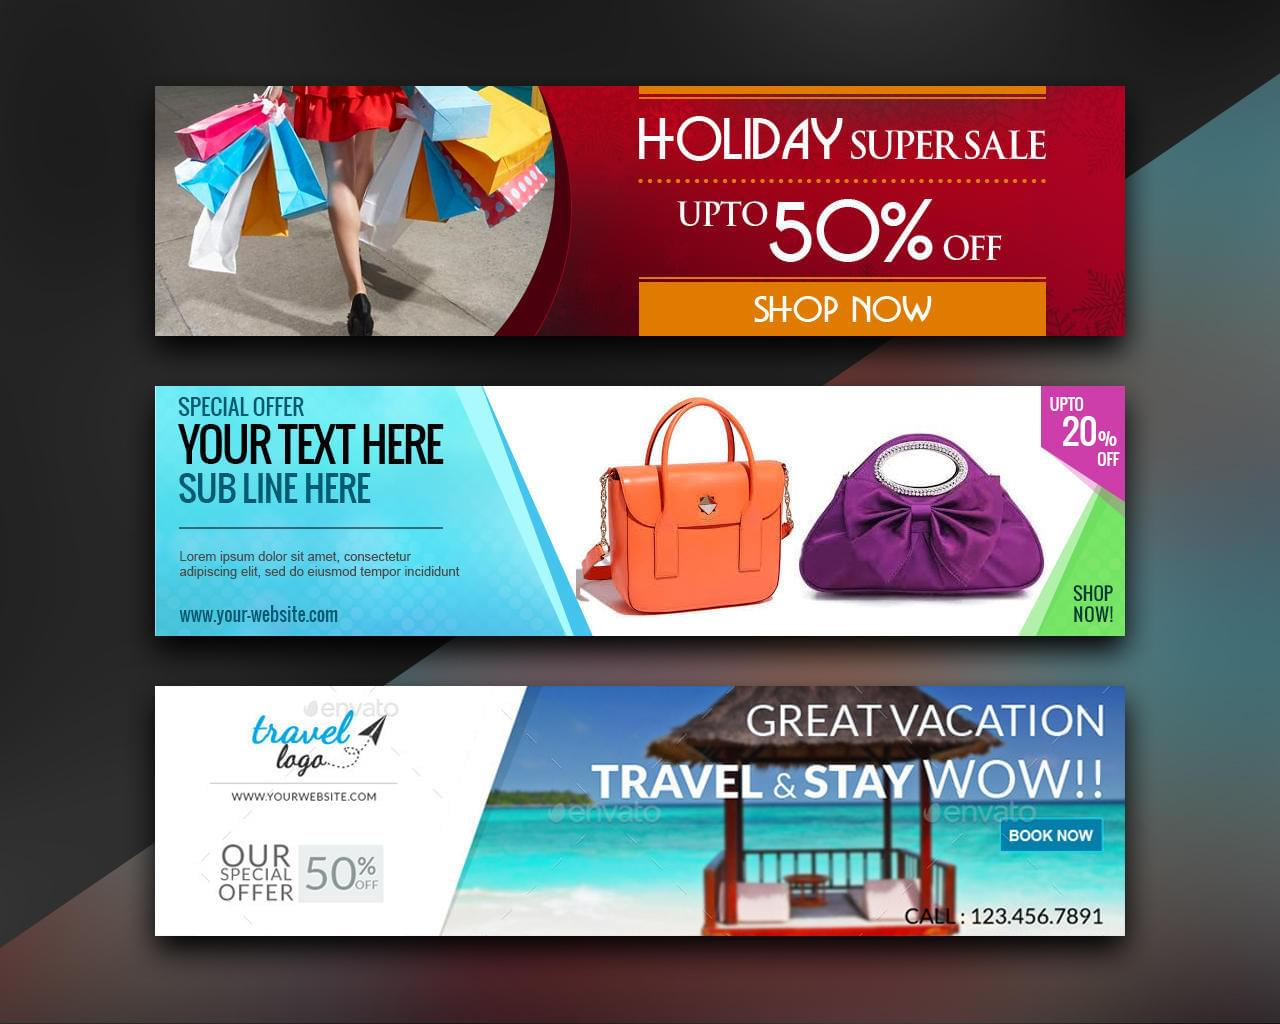 HQ Web Banner design -10sizes by edgyBrain - 111667